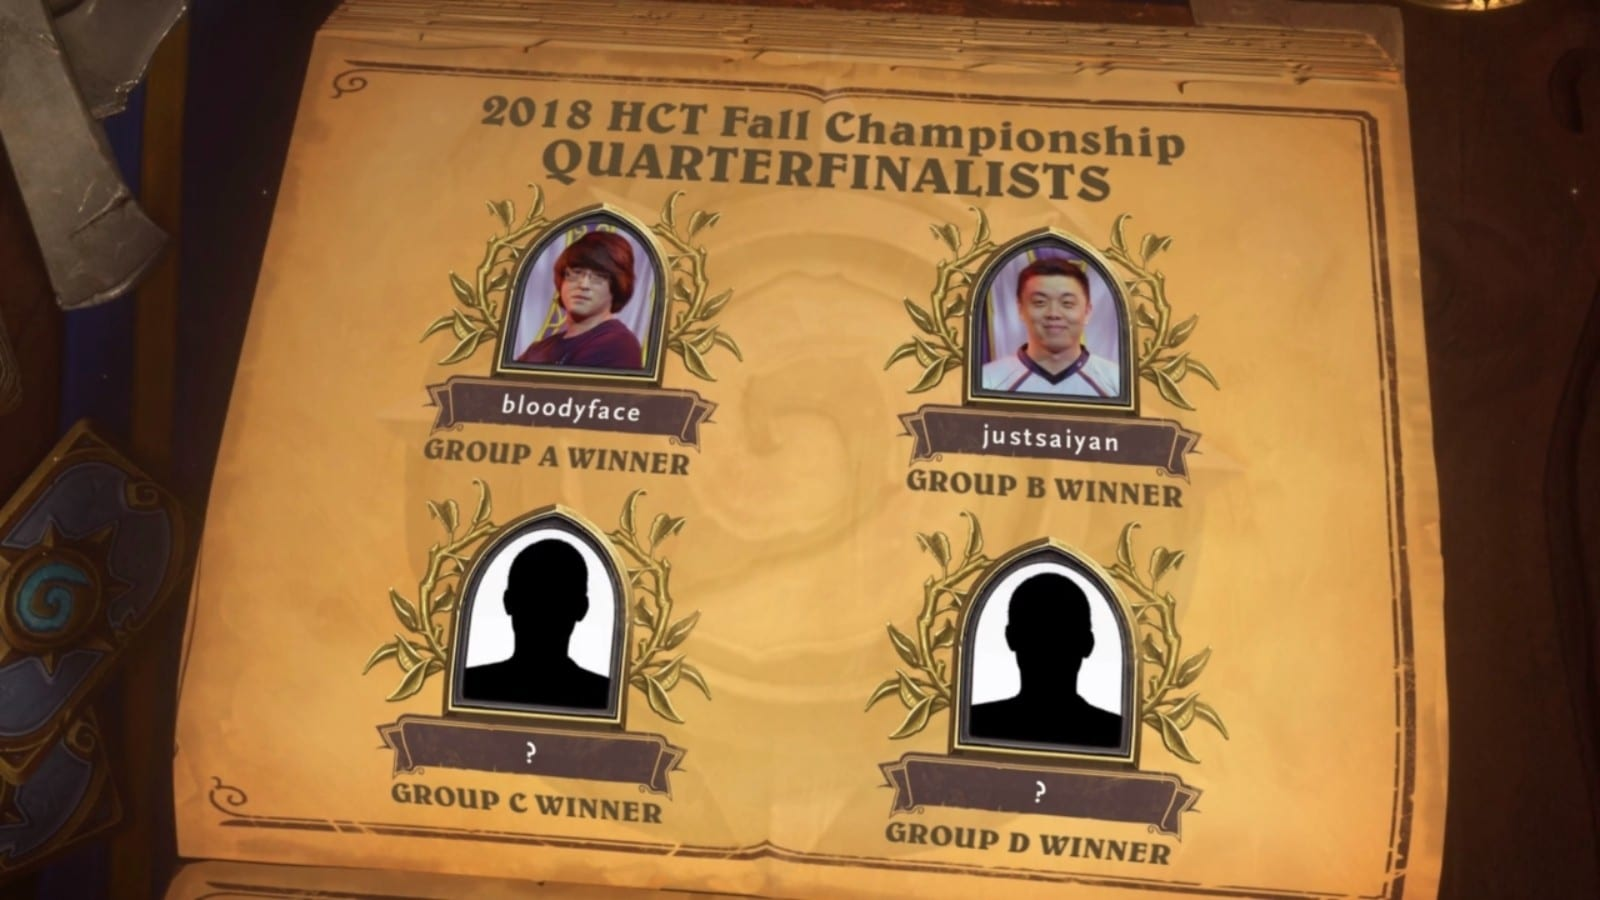 HCT Fall Championship Group A and B